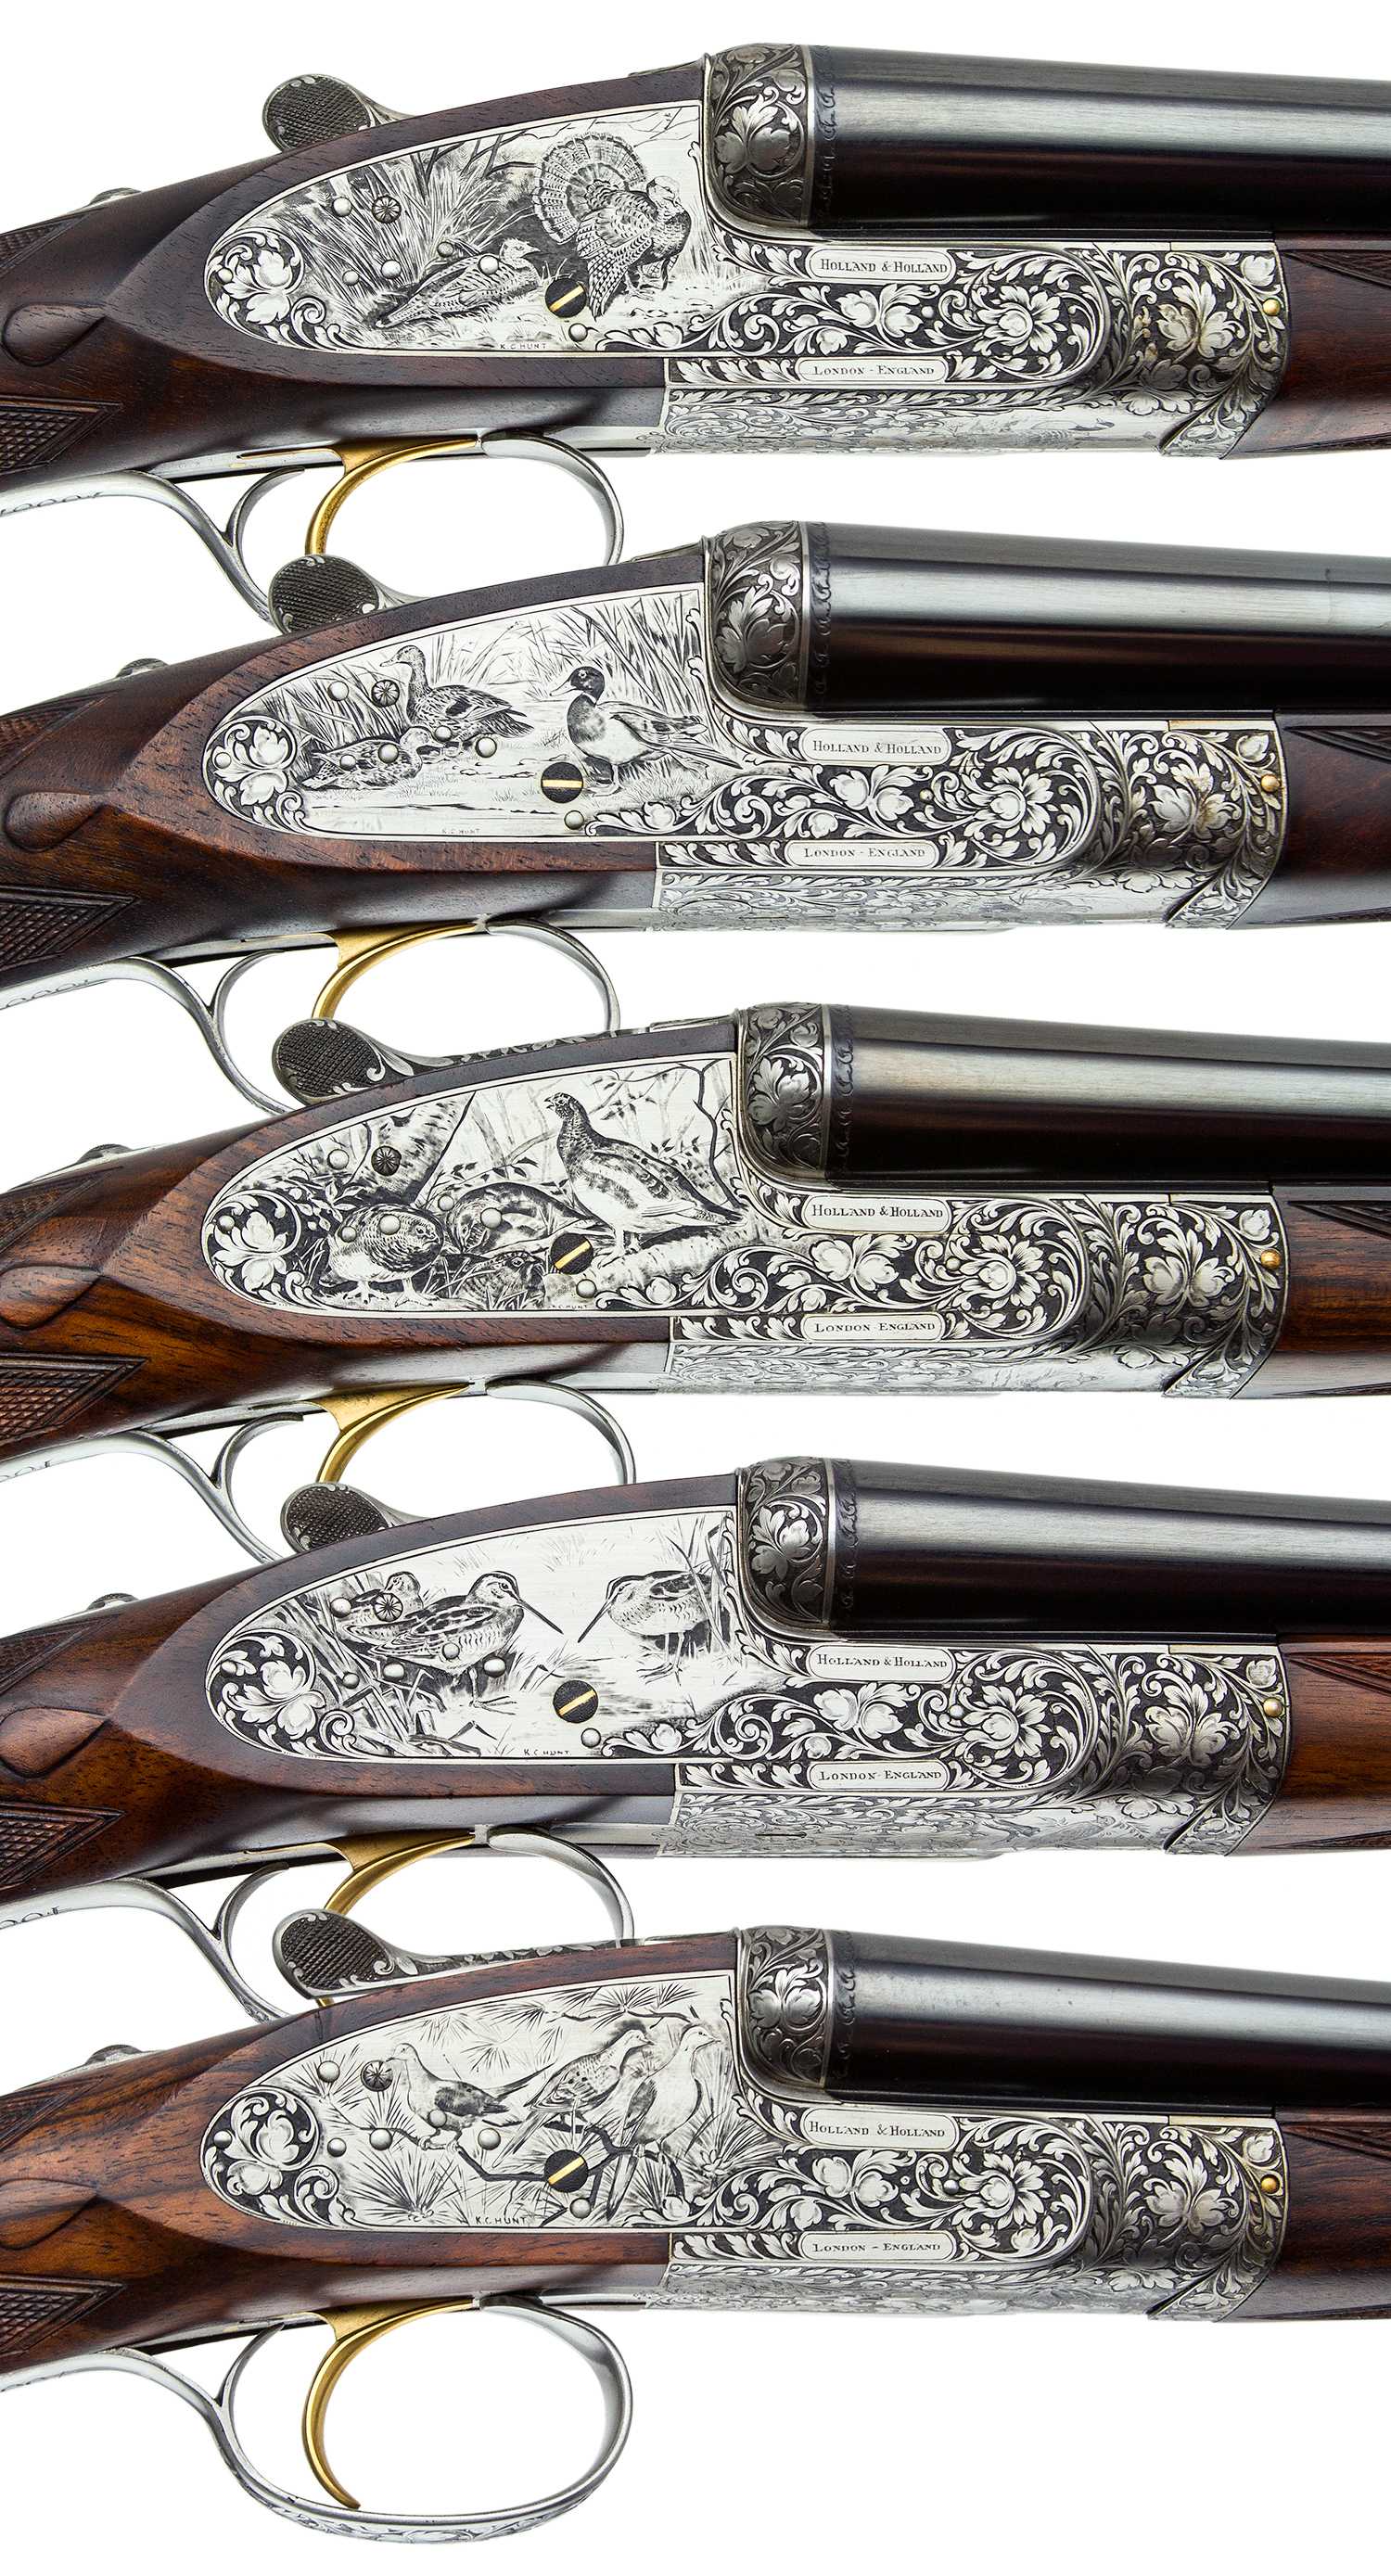 Holland And Holland >> Holland Holland 5 Gun Set 12 12 20 20 28 Gauge Steve Barnett Fine Guns High End Shotguns Rifles Pistols And Revolvers For Sale